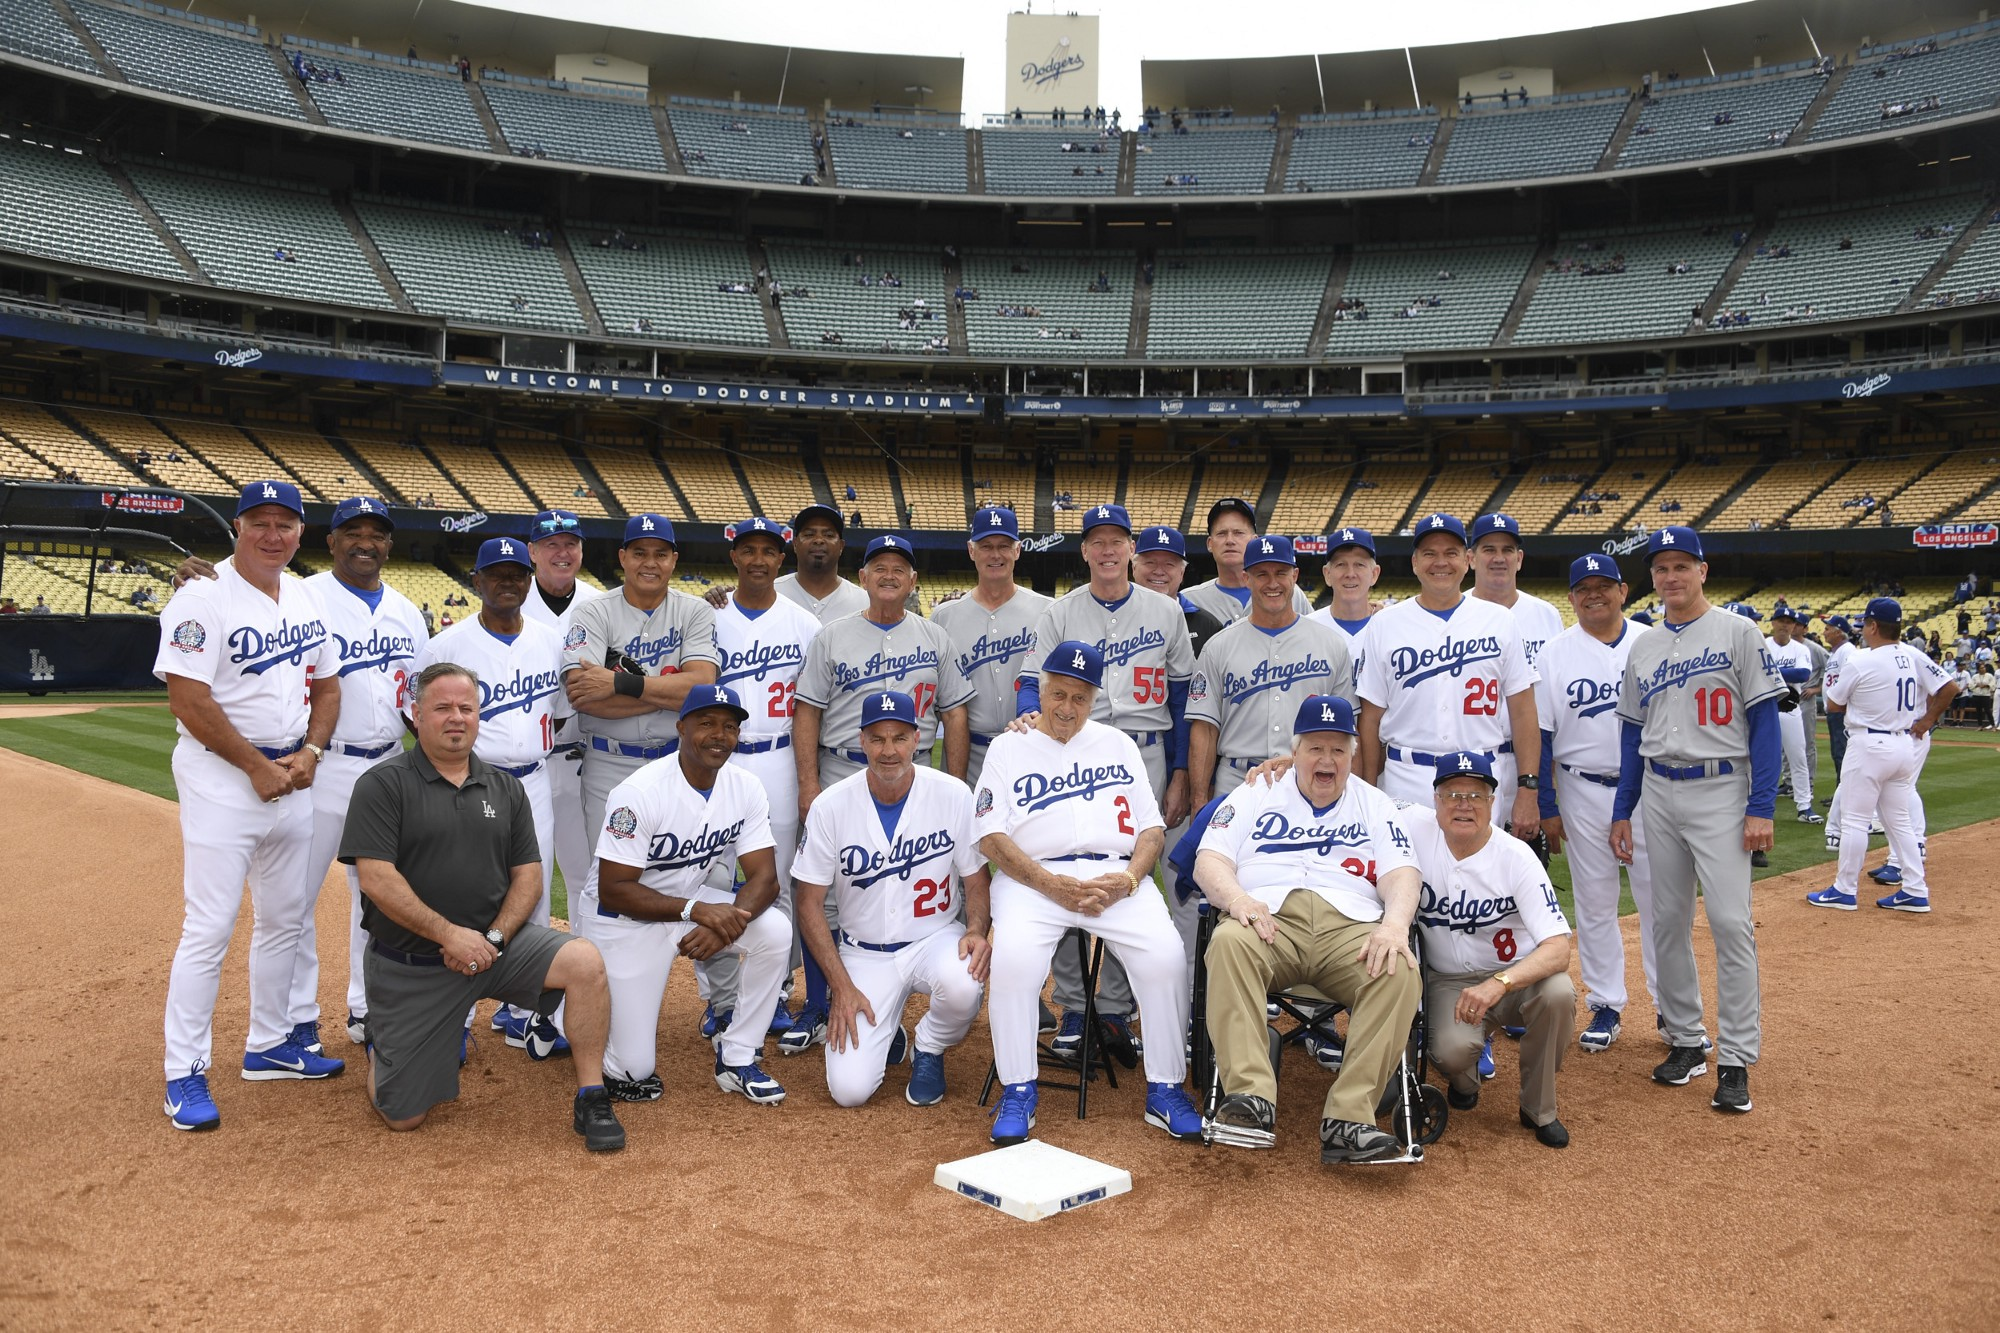 dodgers celebrate 30th anniversary of 1988 champion team at alumni game